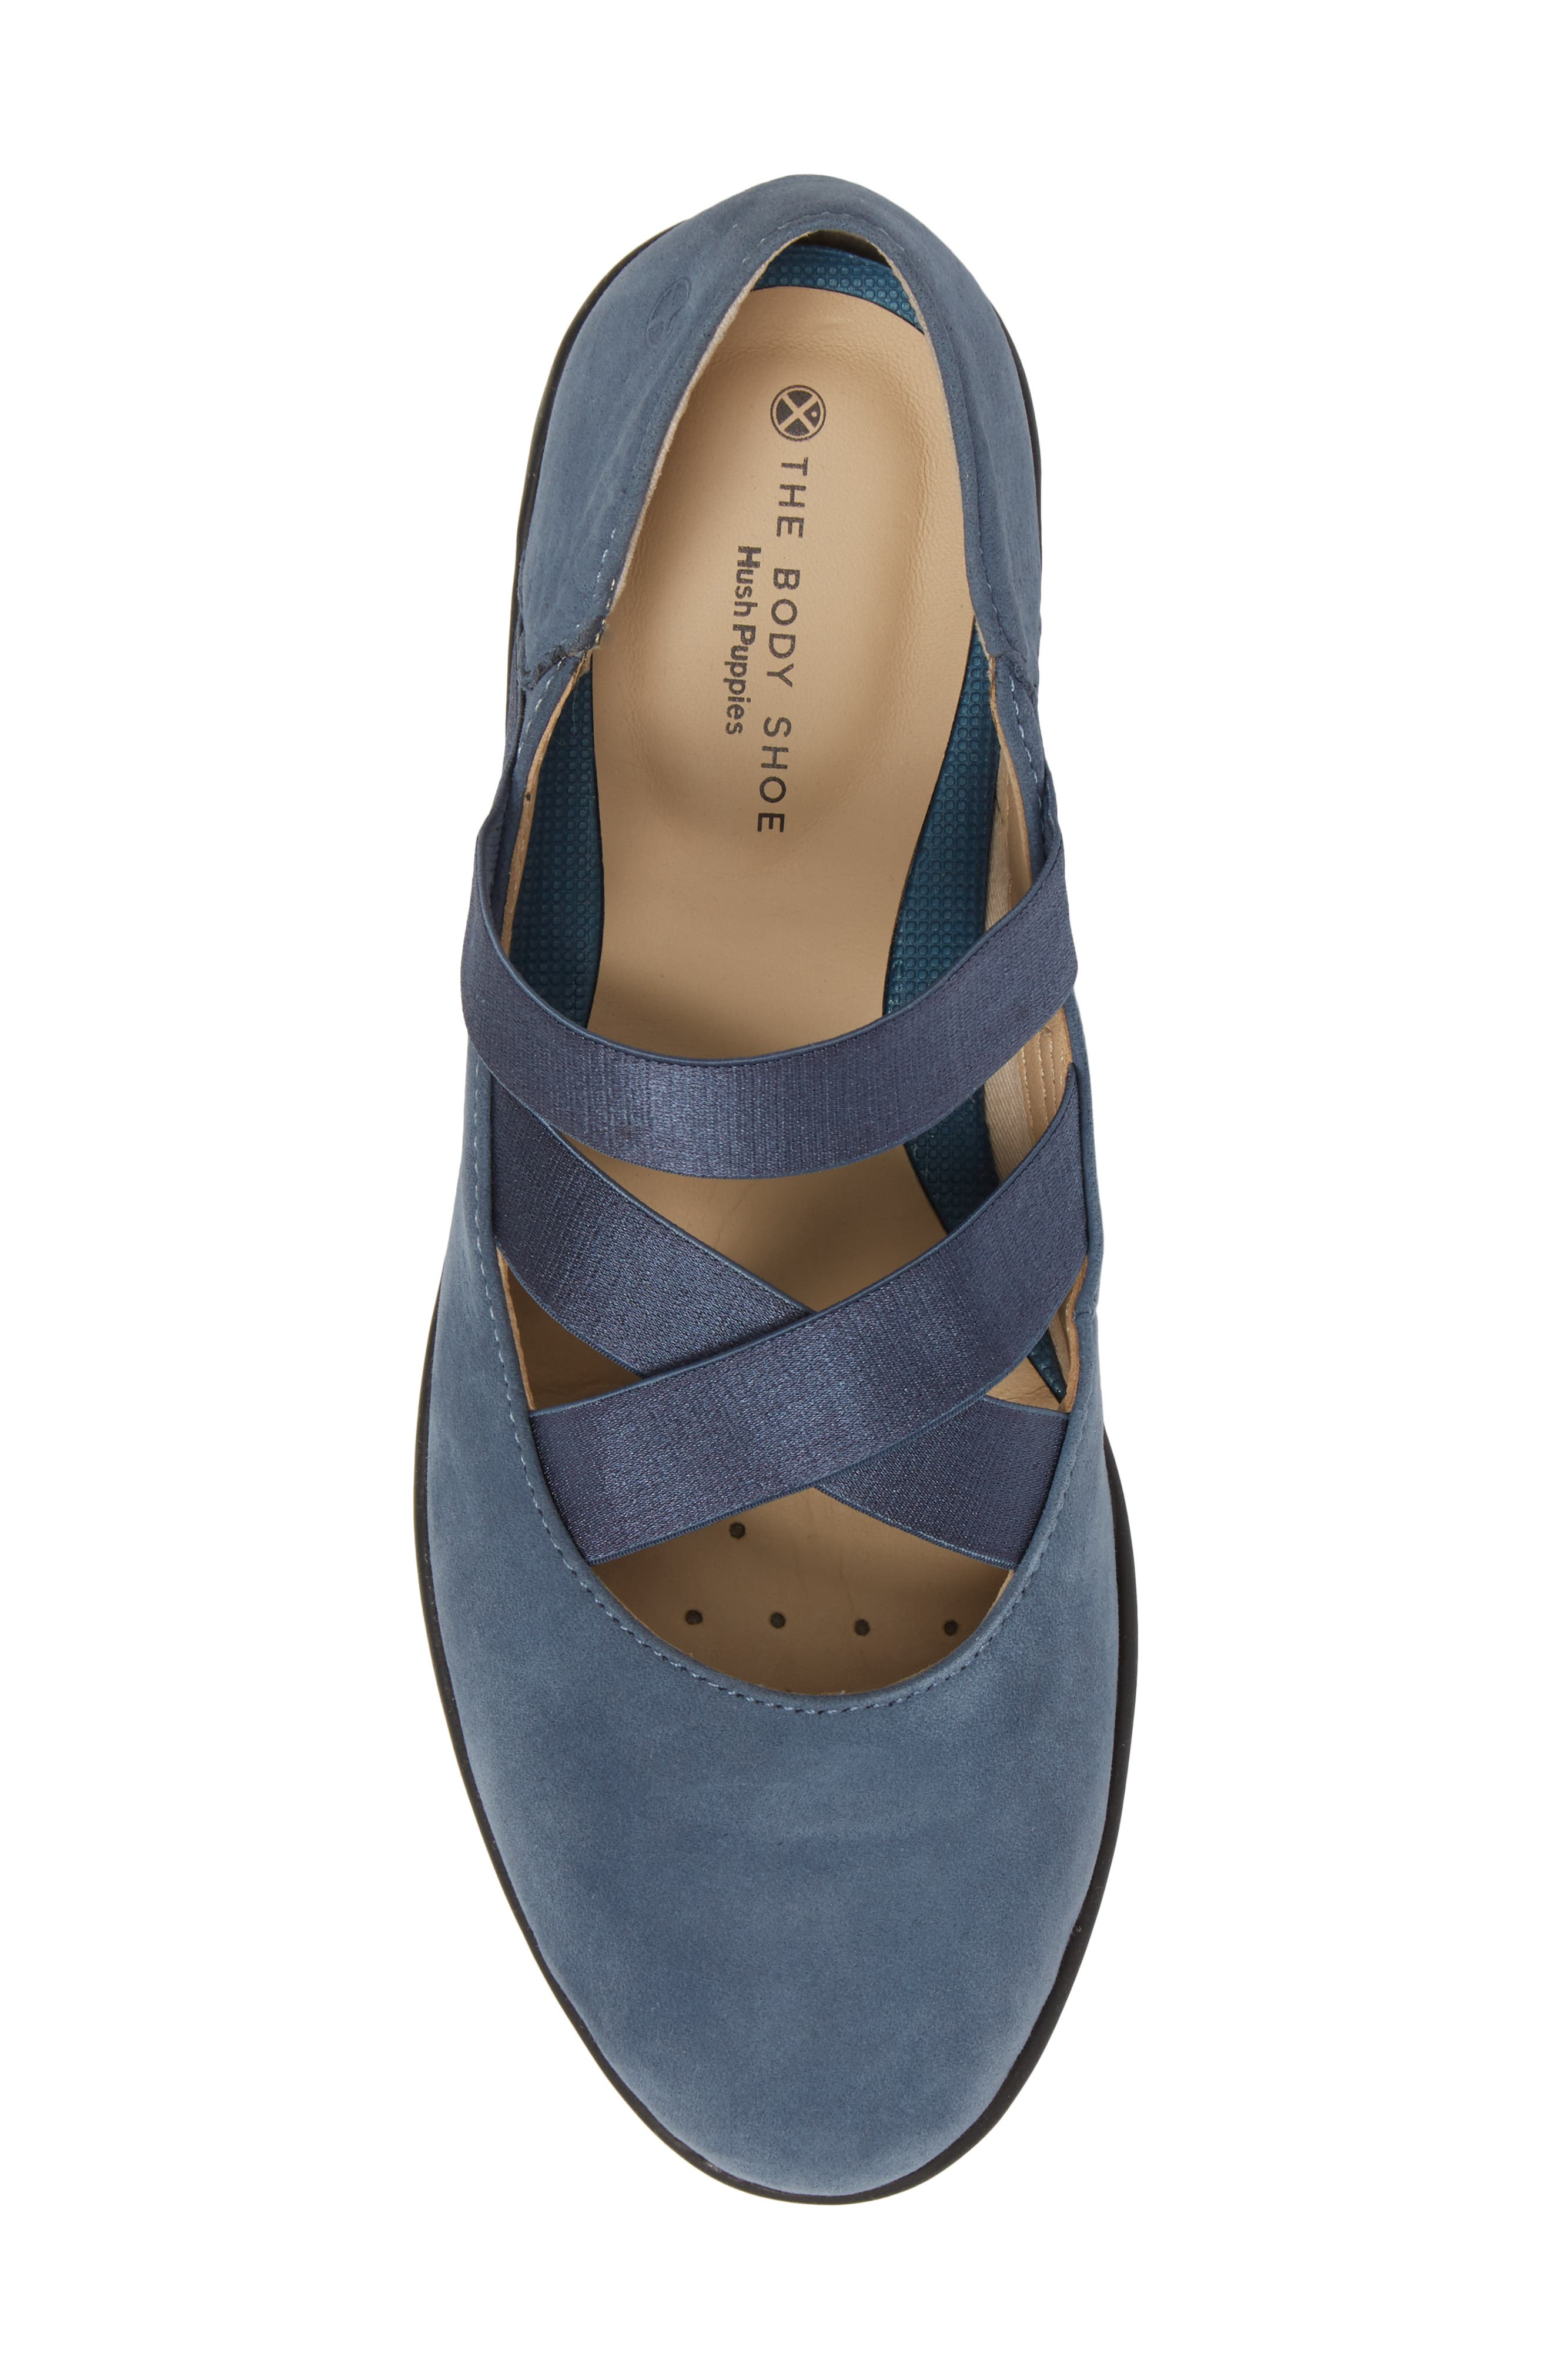 Meree Madrine Cross Strap Flat,                             Alternate thumbnail 5, color,                             Vintage Indigo Nubuck Leather